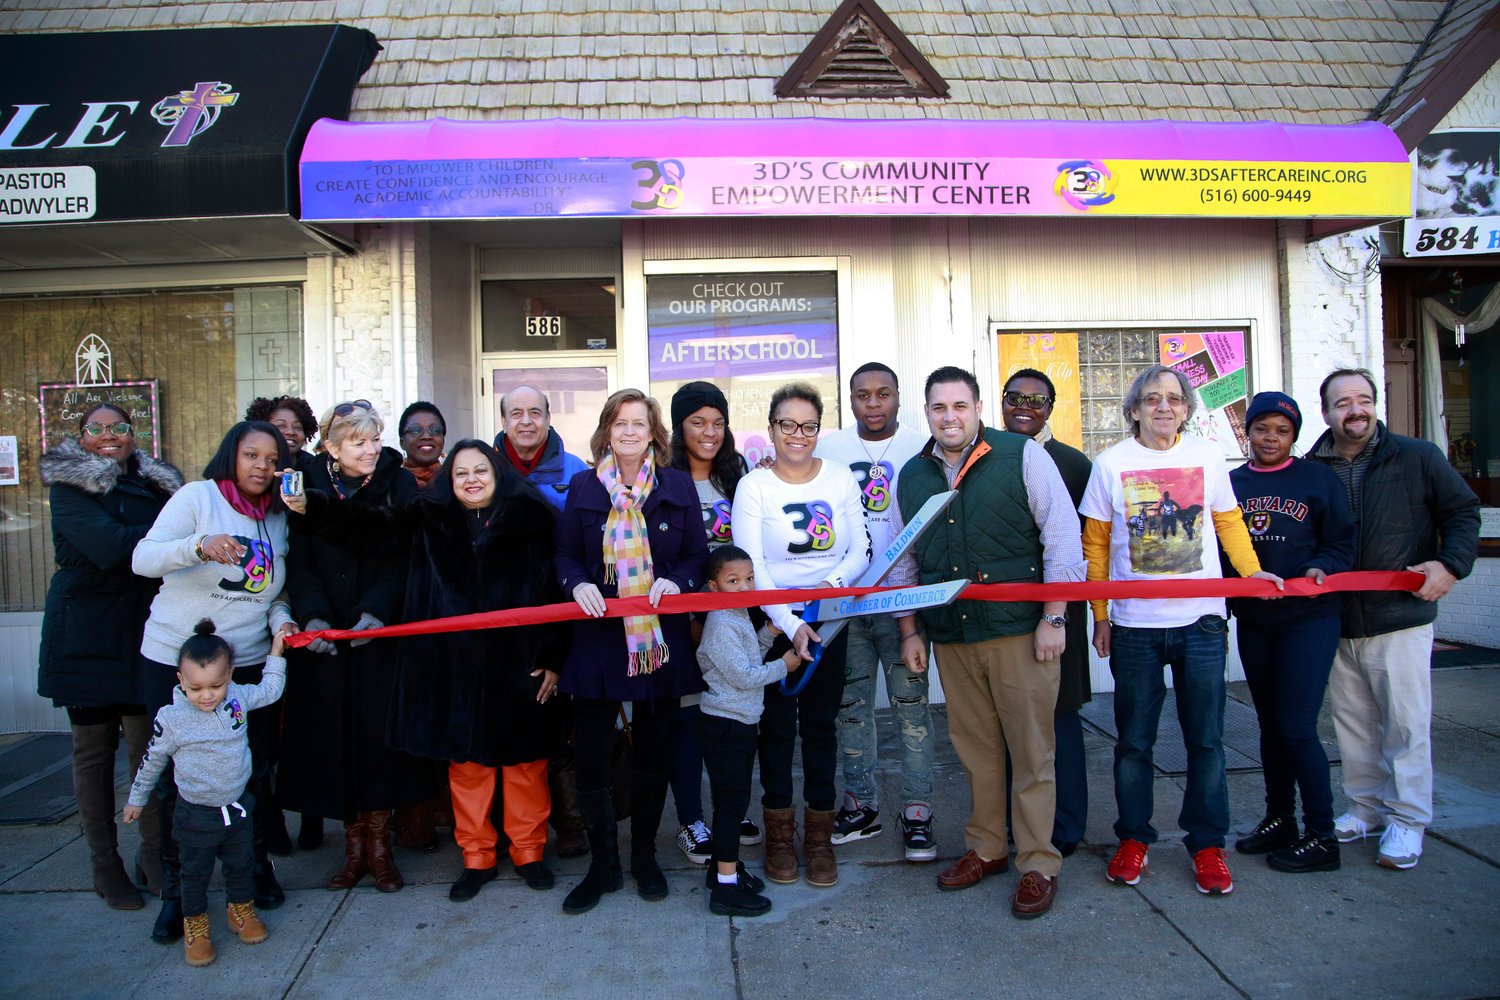 Williams, center, with family and community members, cut the ribbon on 3D's Community Empowerment Center last winter.